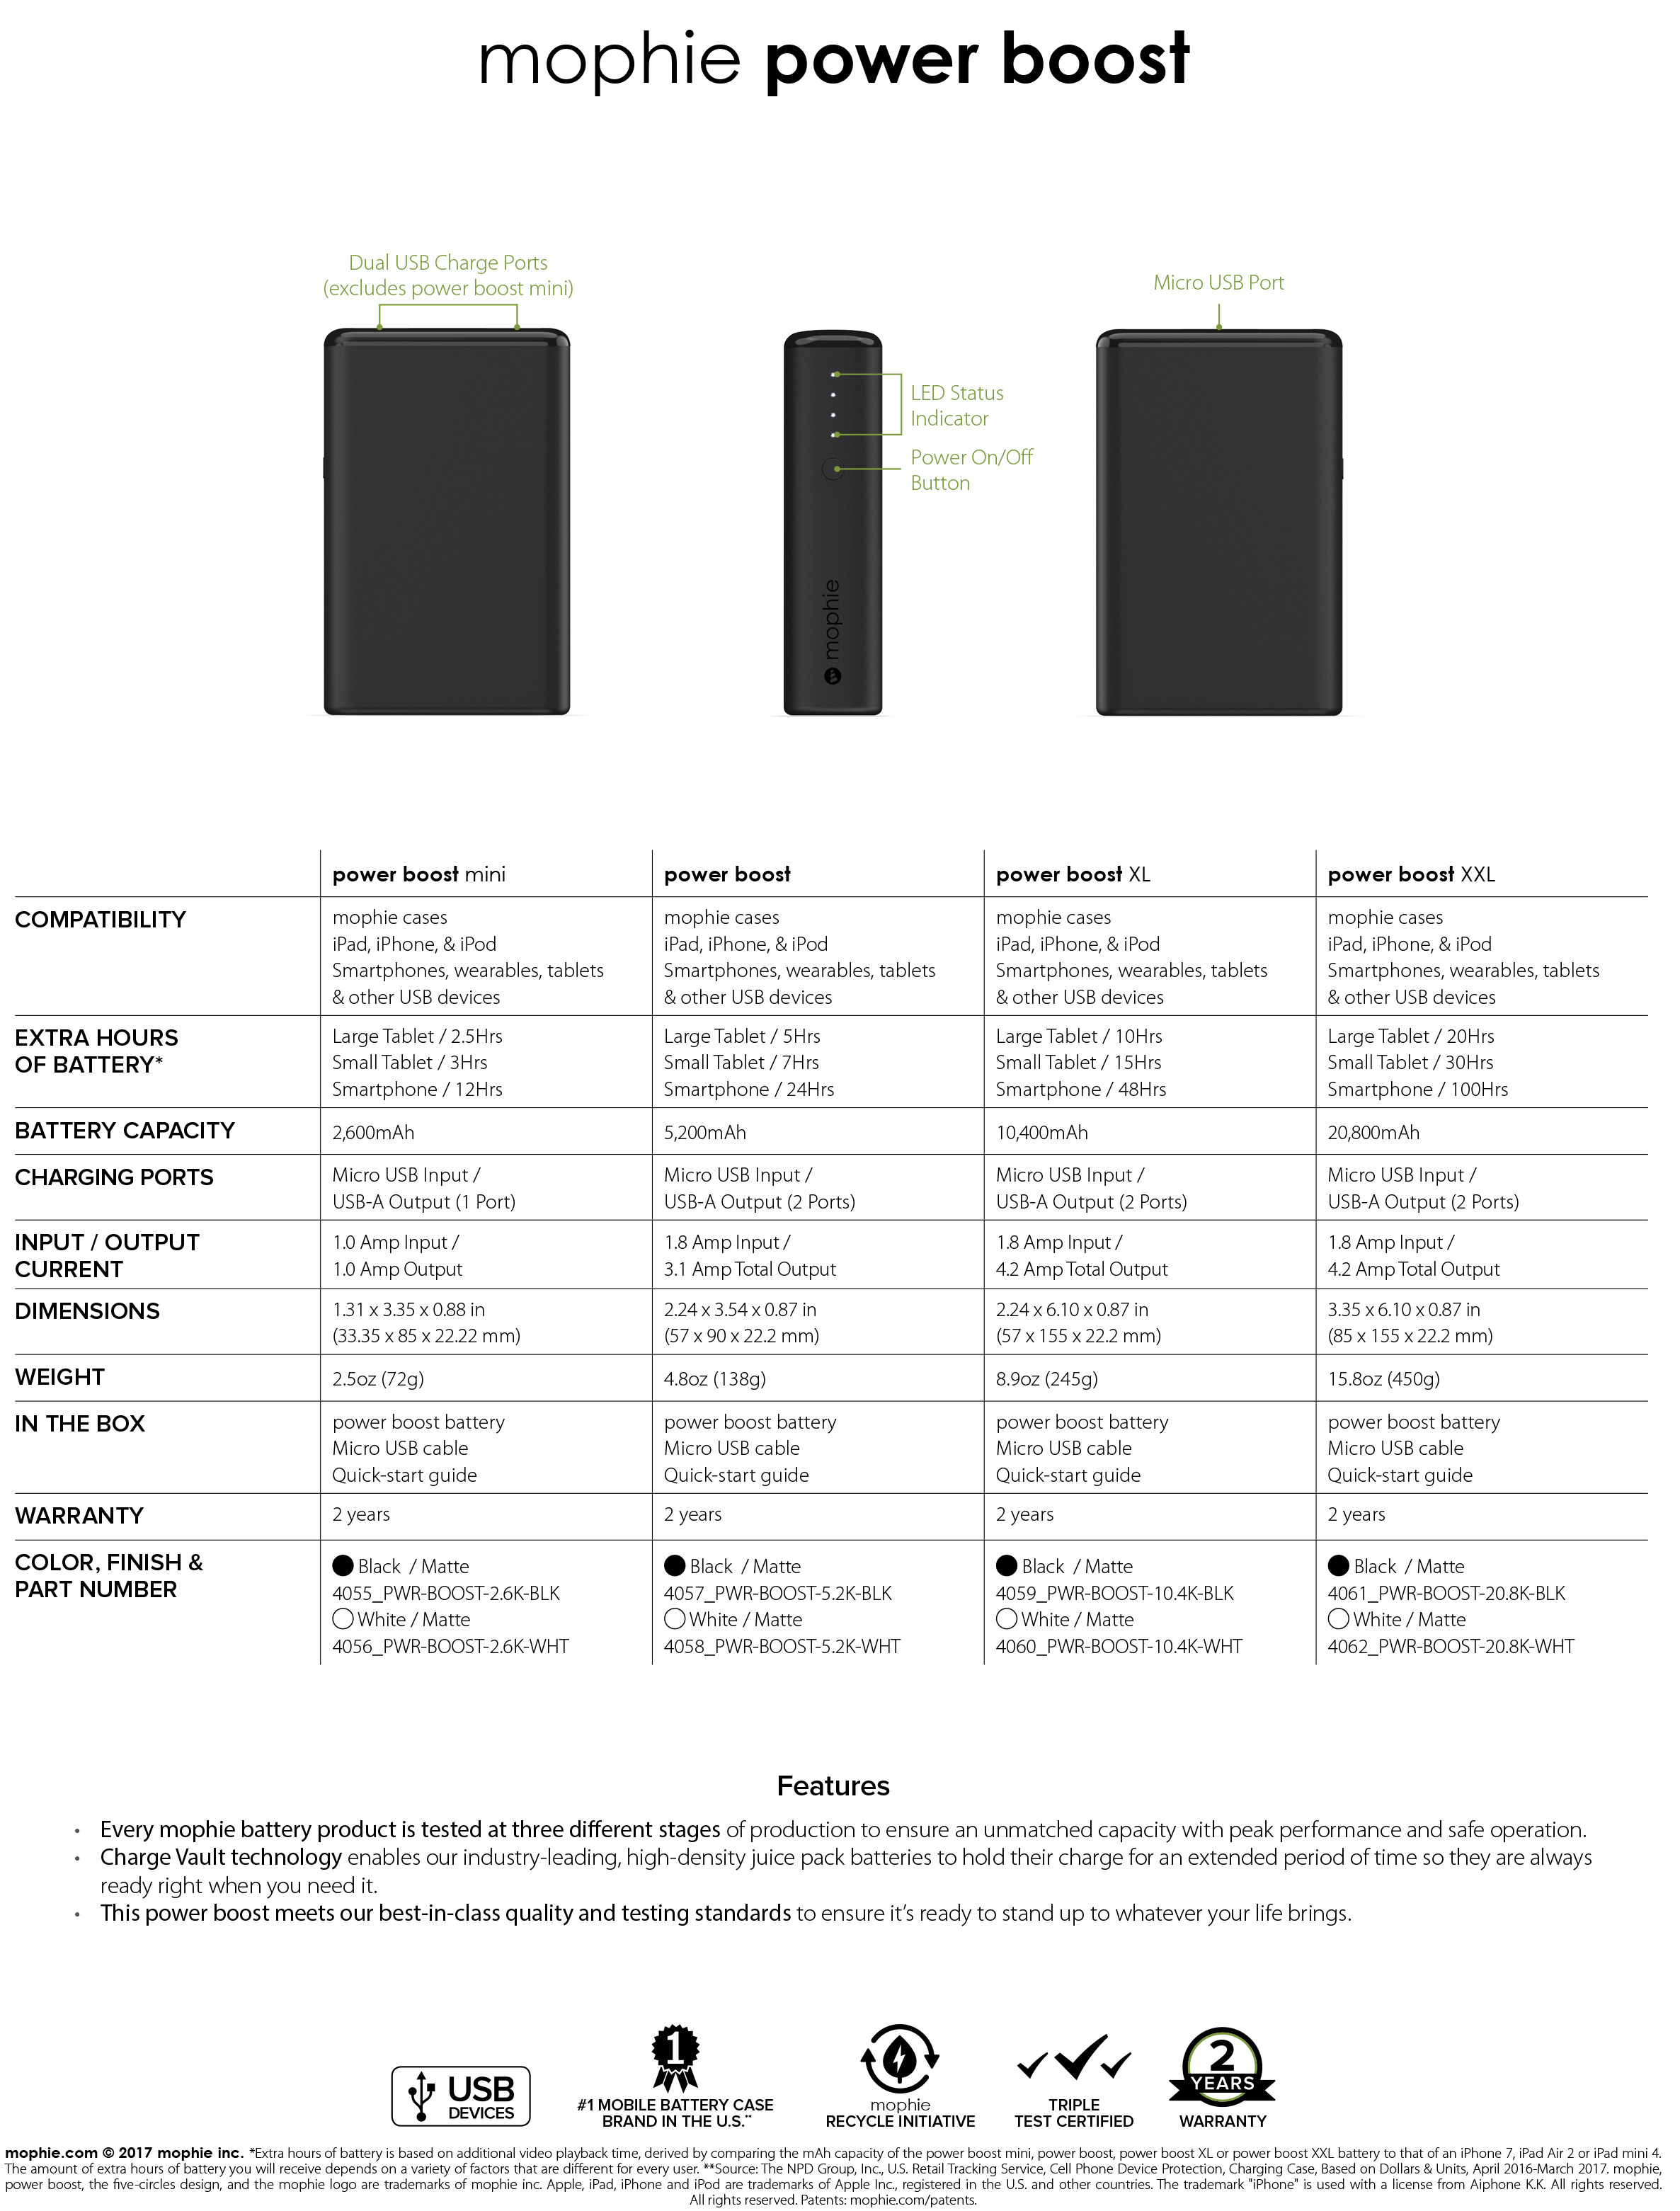 mophie-power-boost-5200mah-malaysia-authorized-retailer-forexengineer-store-overview-1